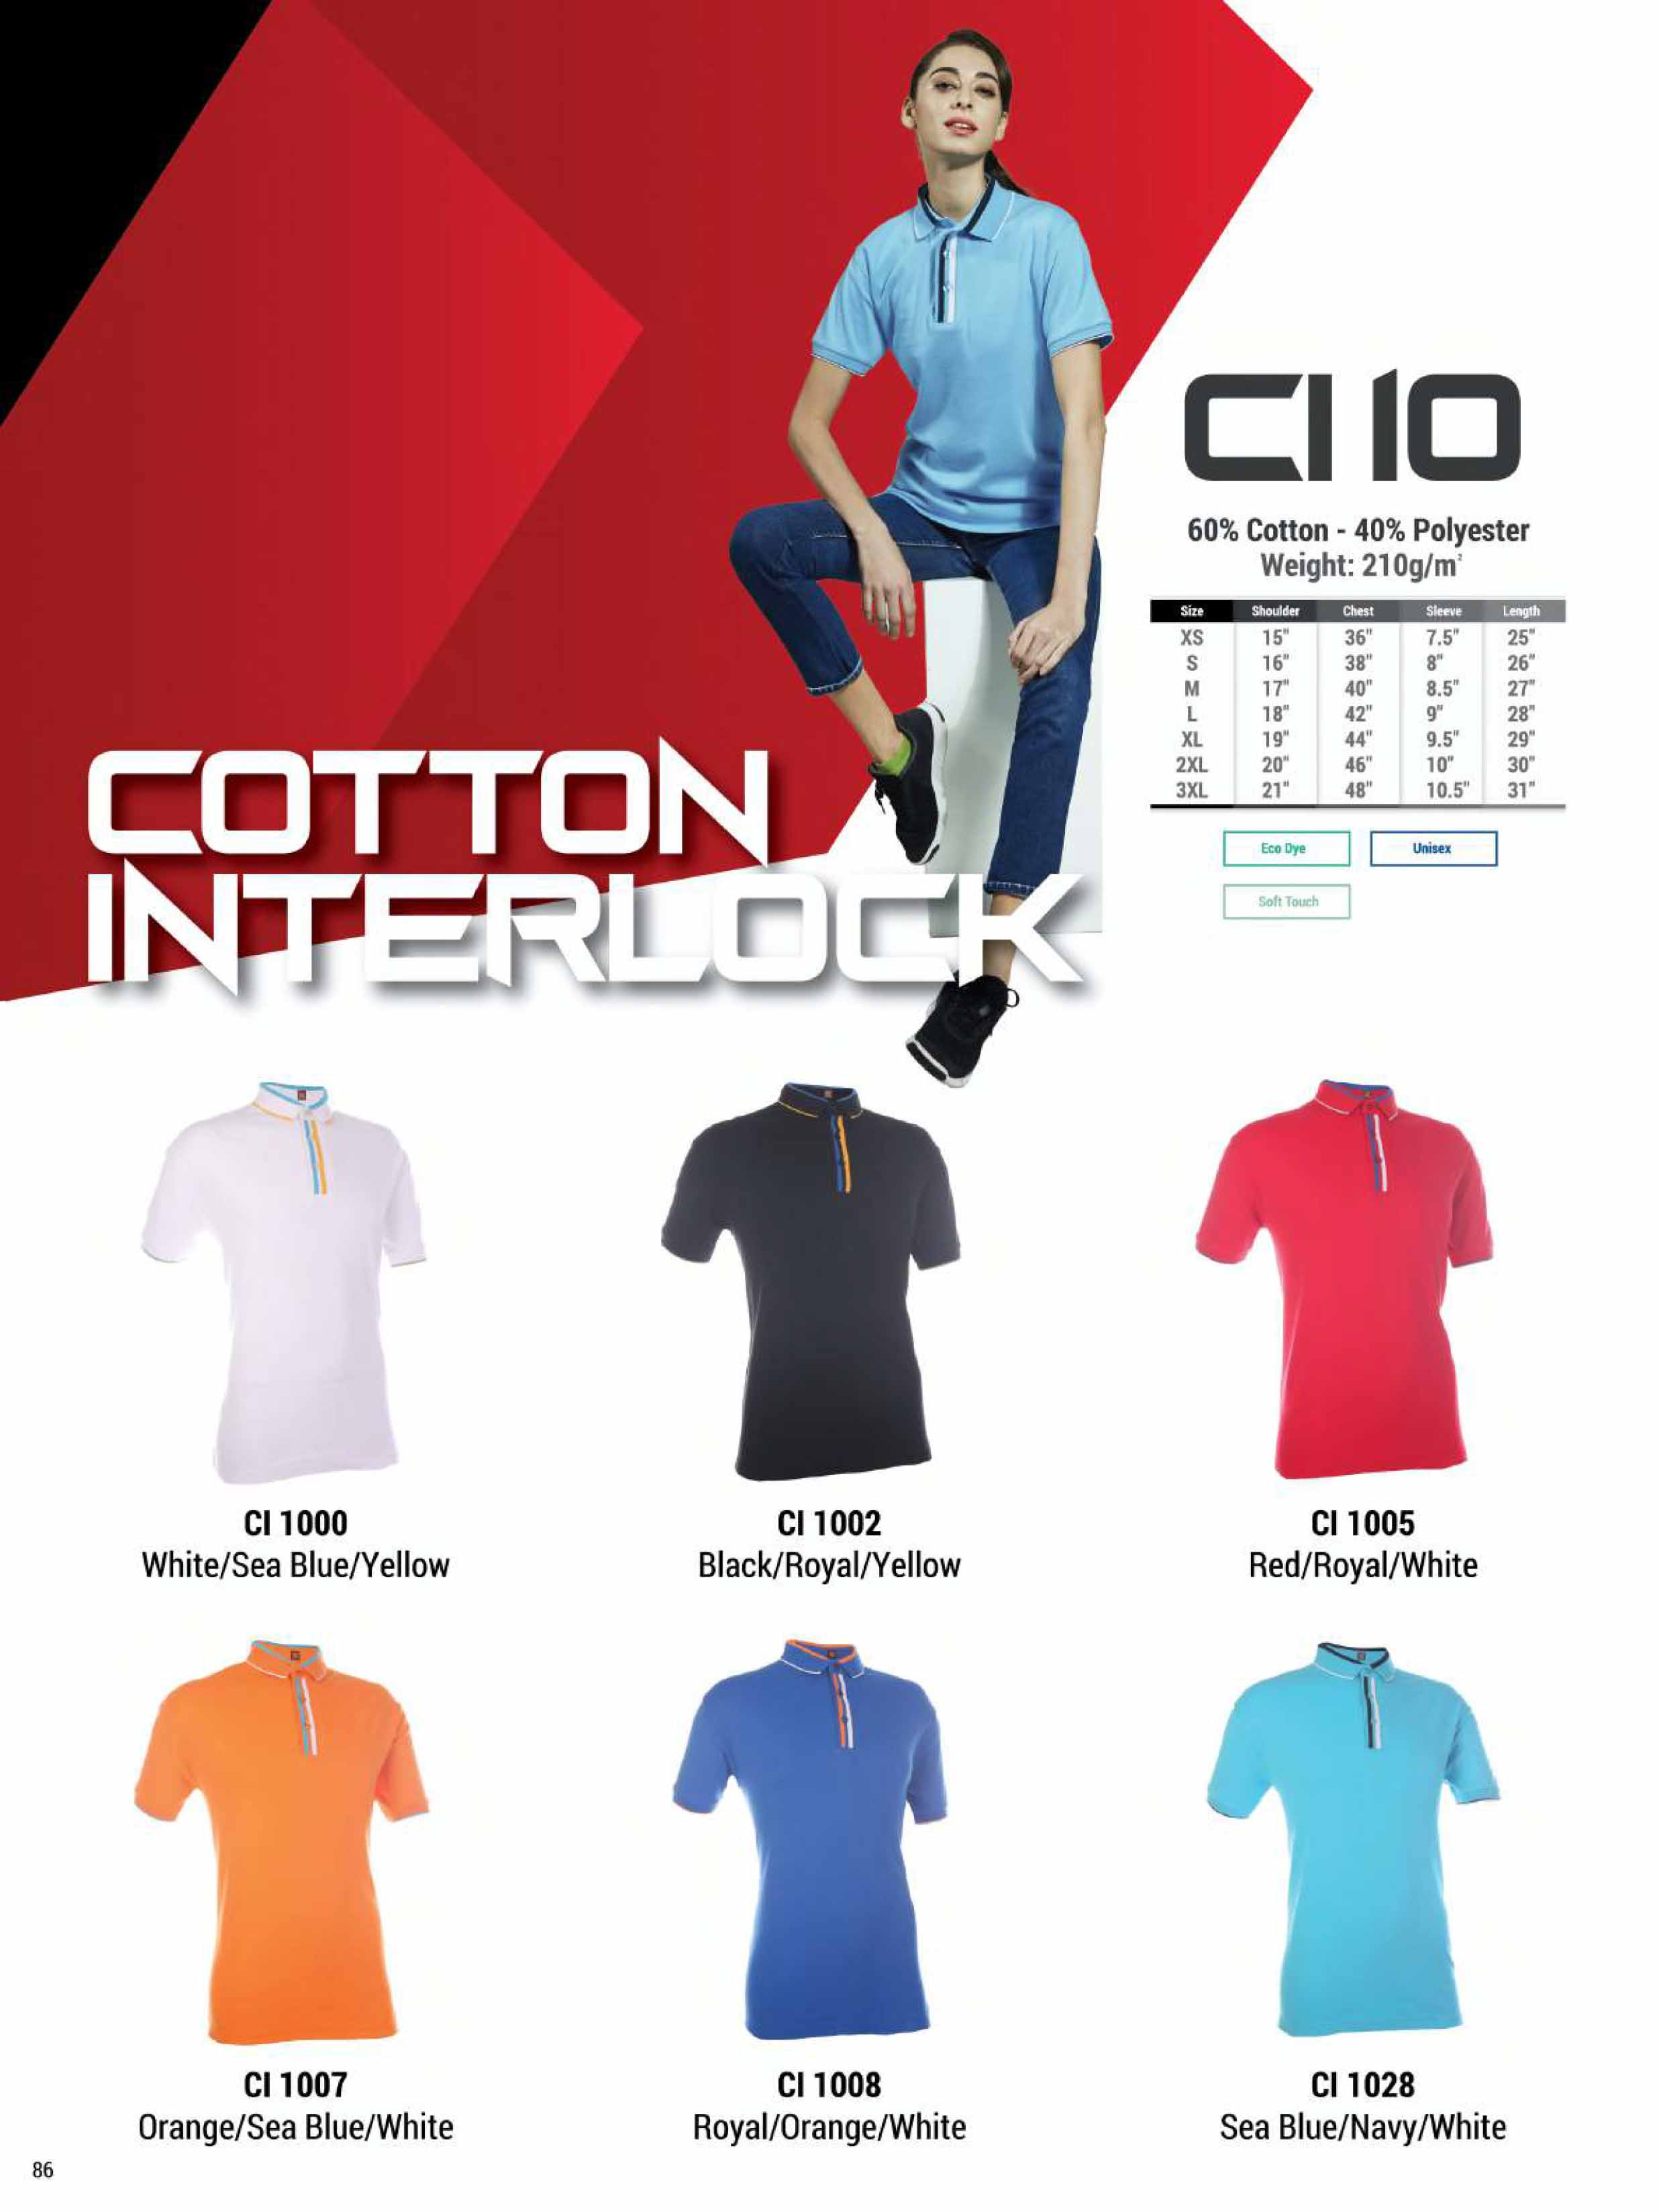 CI10 COTTON INTERLOCK POLO T-SHIRT